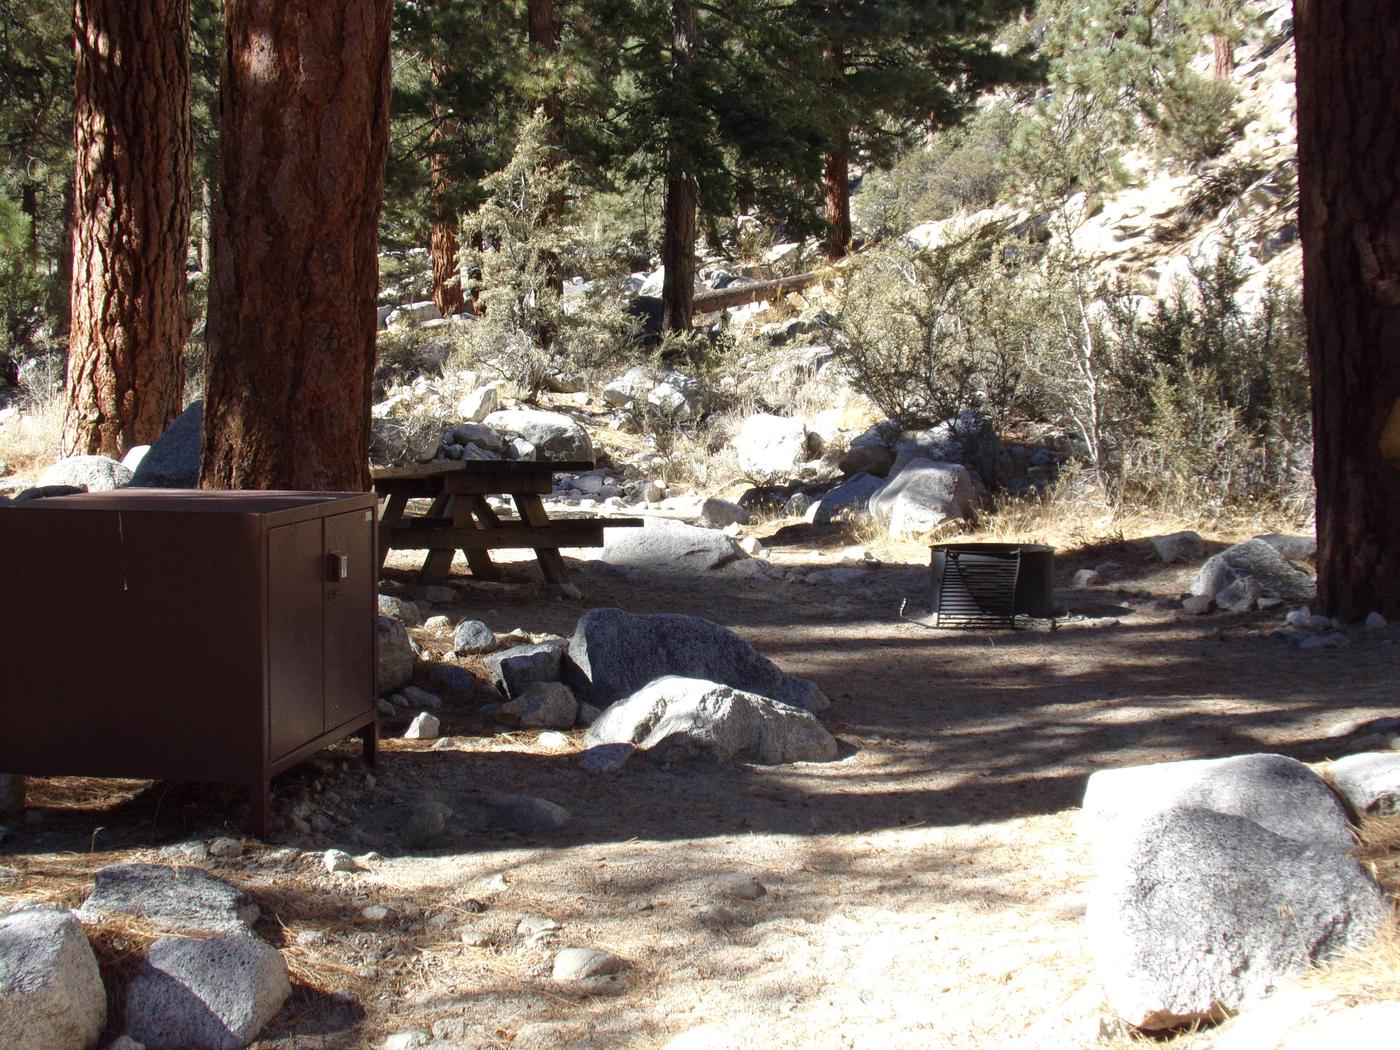 Mt. Whitney Portal Campground site #23 featuring the mountain top setting picnic area with fire pit.